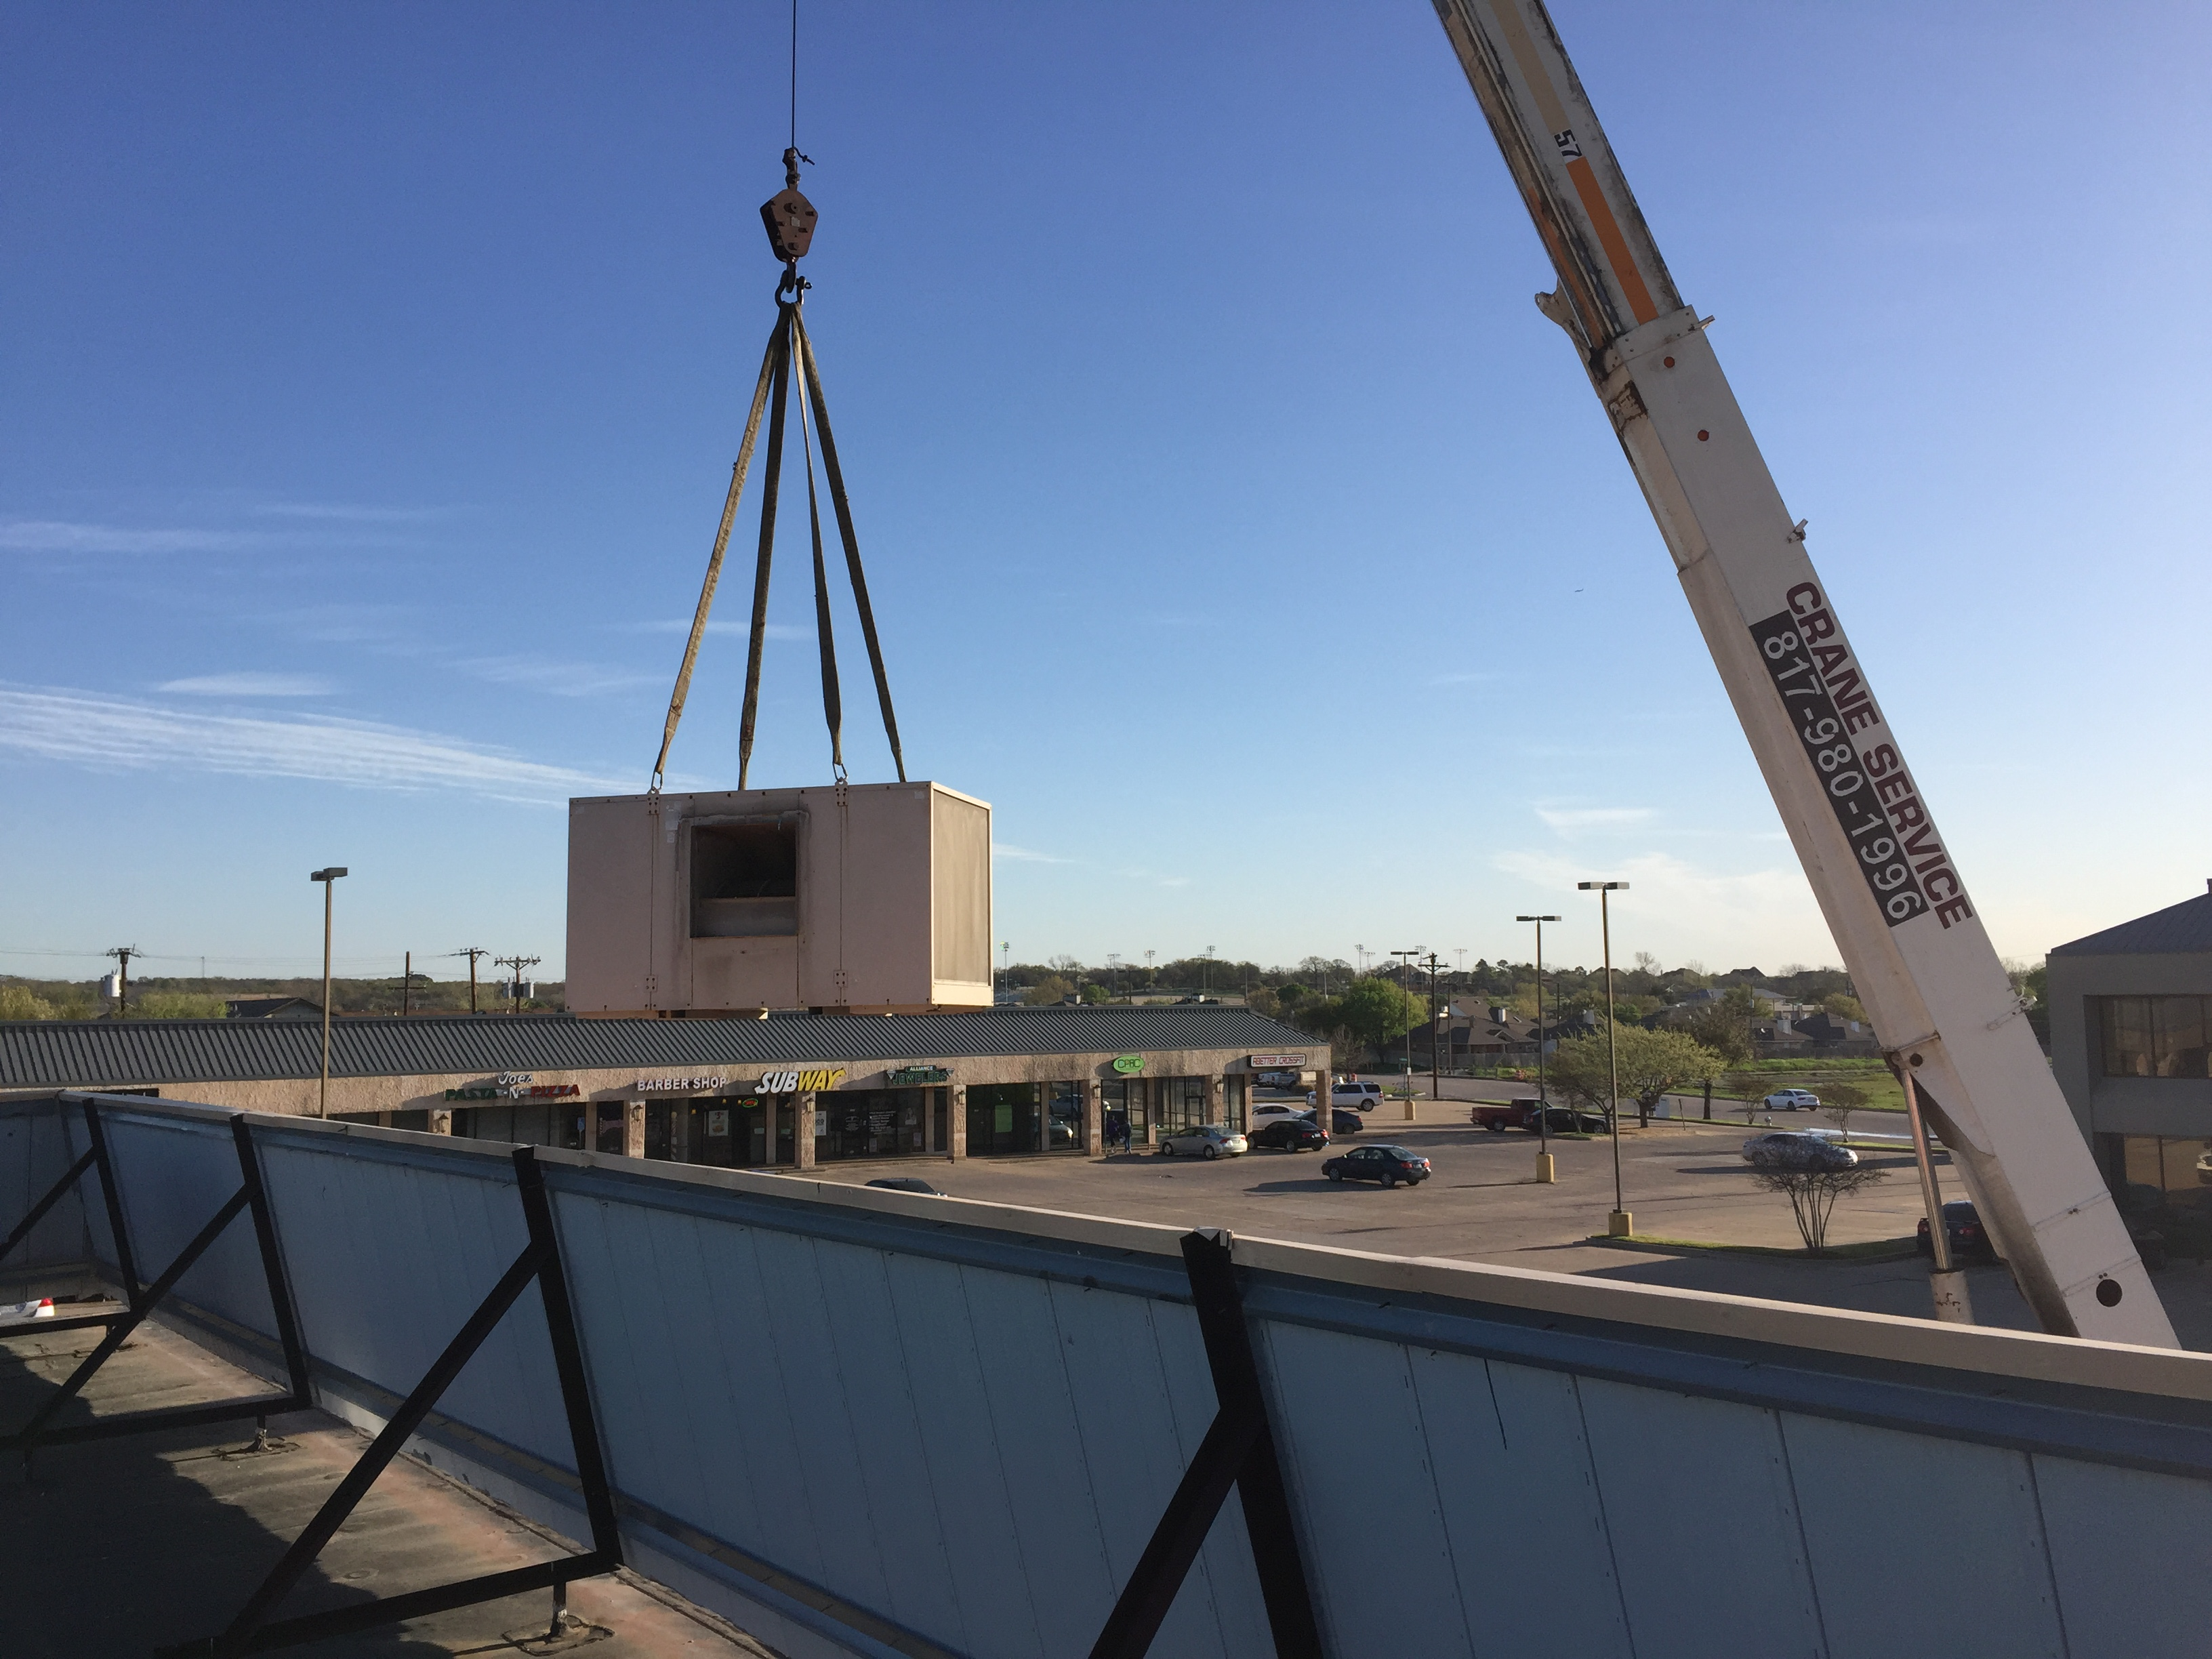 Crane lifting a cooler on the roof